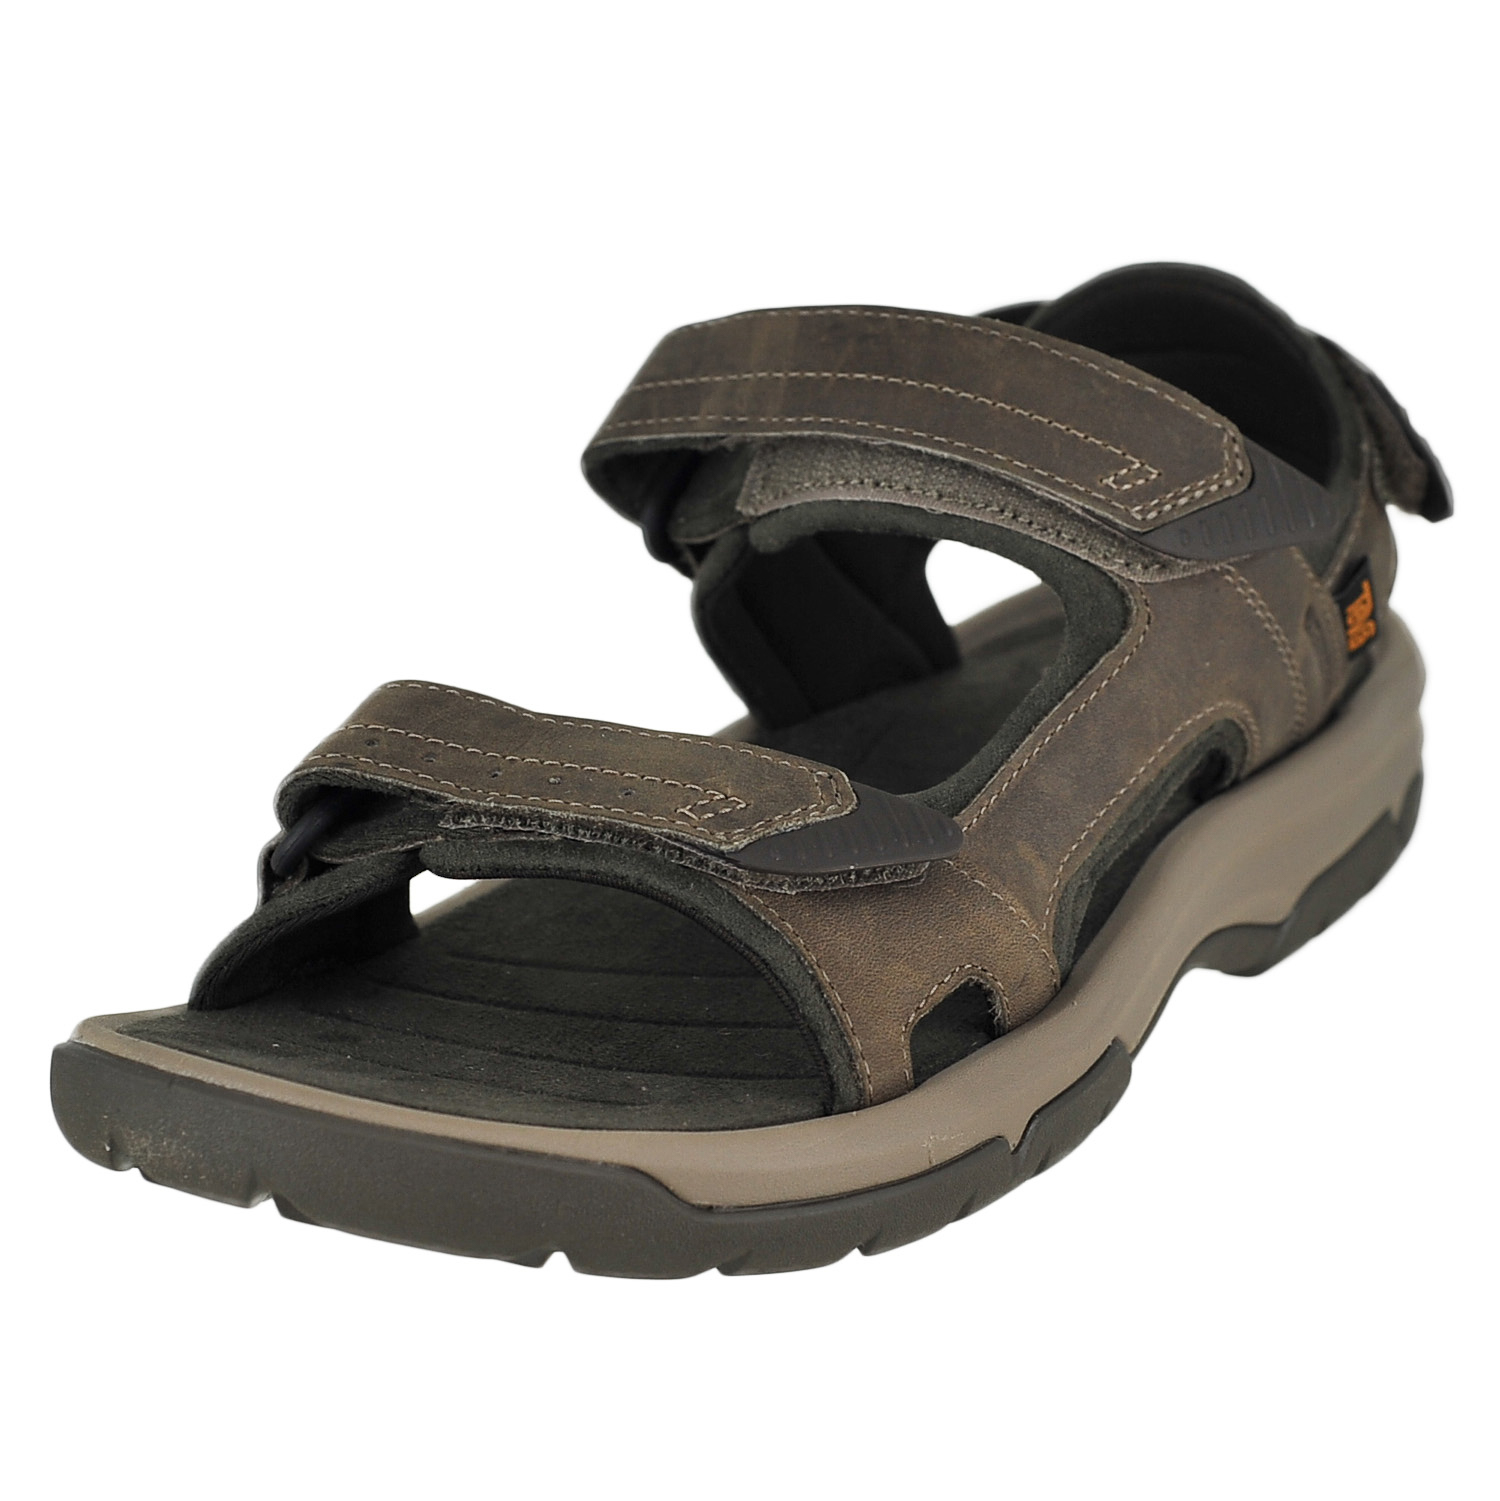 290e67bae Teva Langdon Sandal Walnut Mens Ankle Hook And Loop Strap Size 8M ...